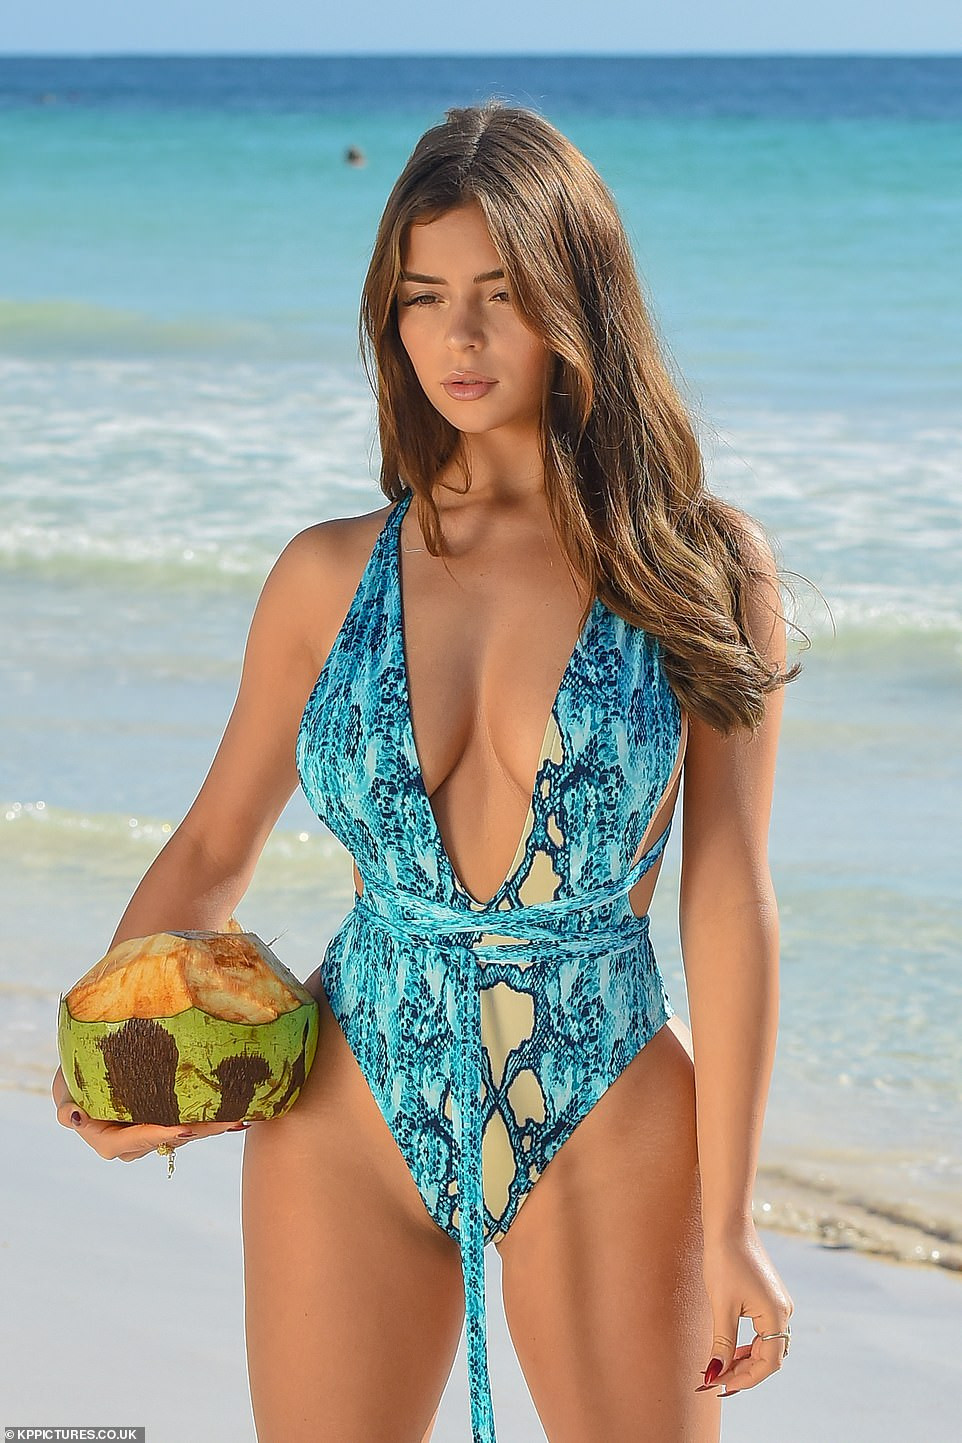 British model, Demi Rose puts on an eye-popping display as she poses in aquamarine snakeskin swimsuit (Photos)